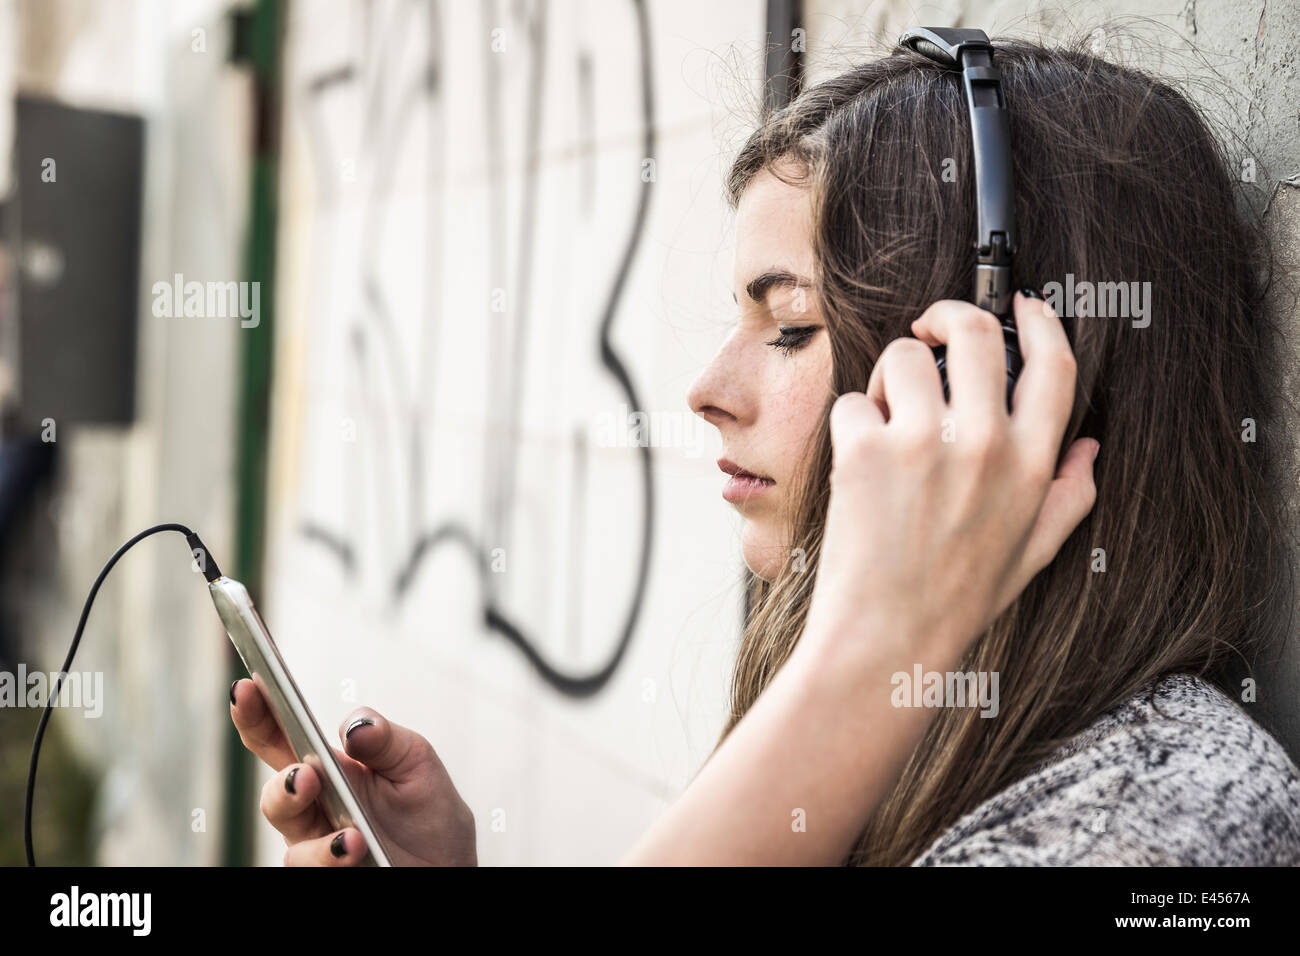 Listening to music on smartphone Photo Stock